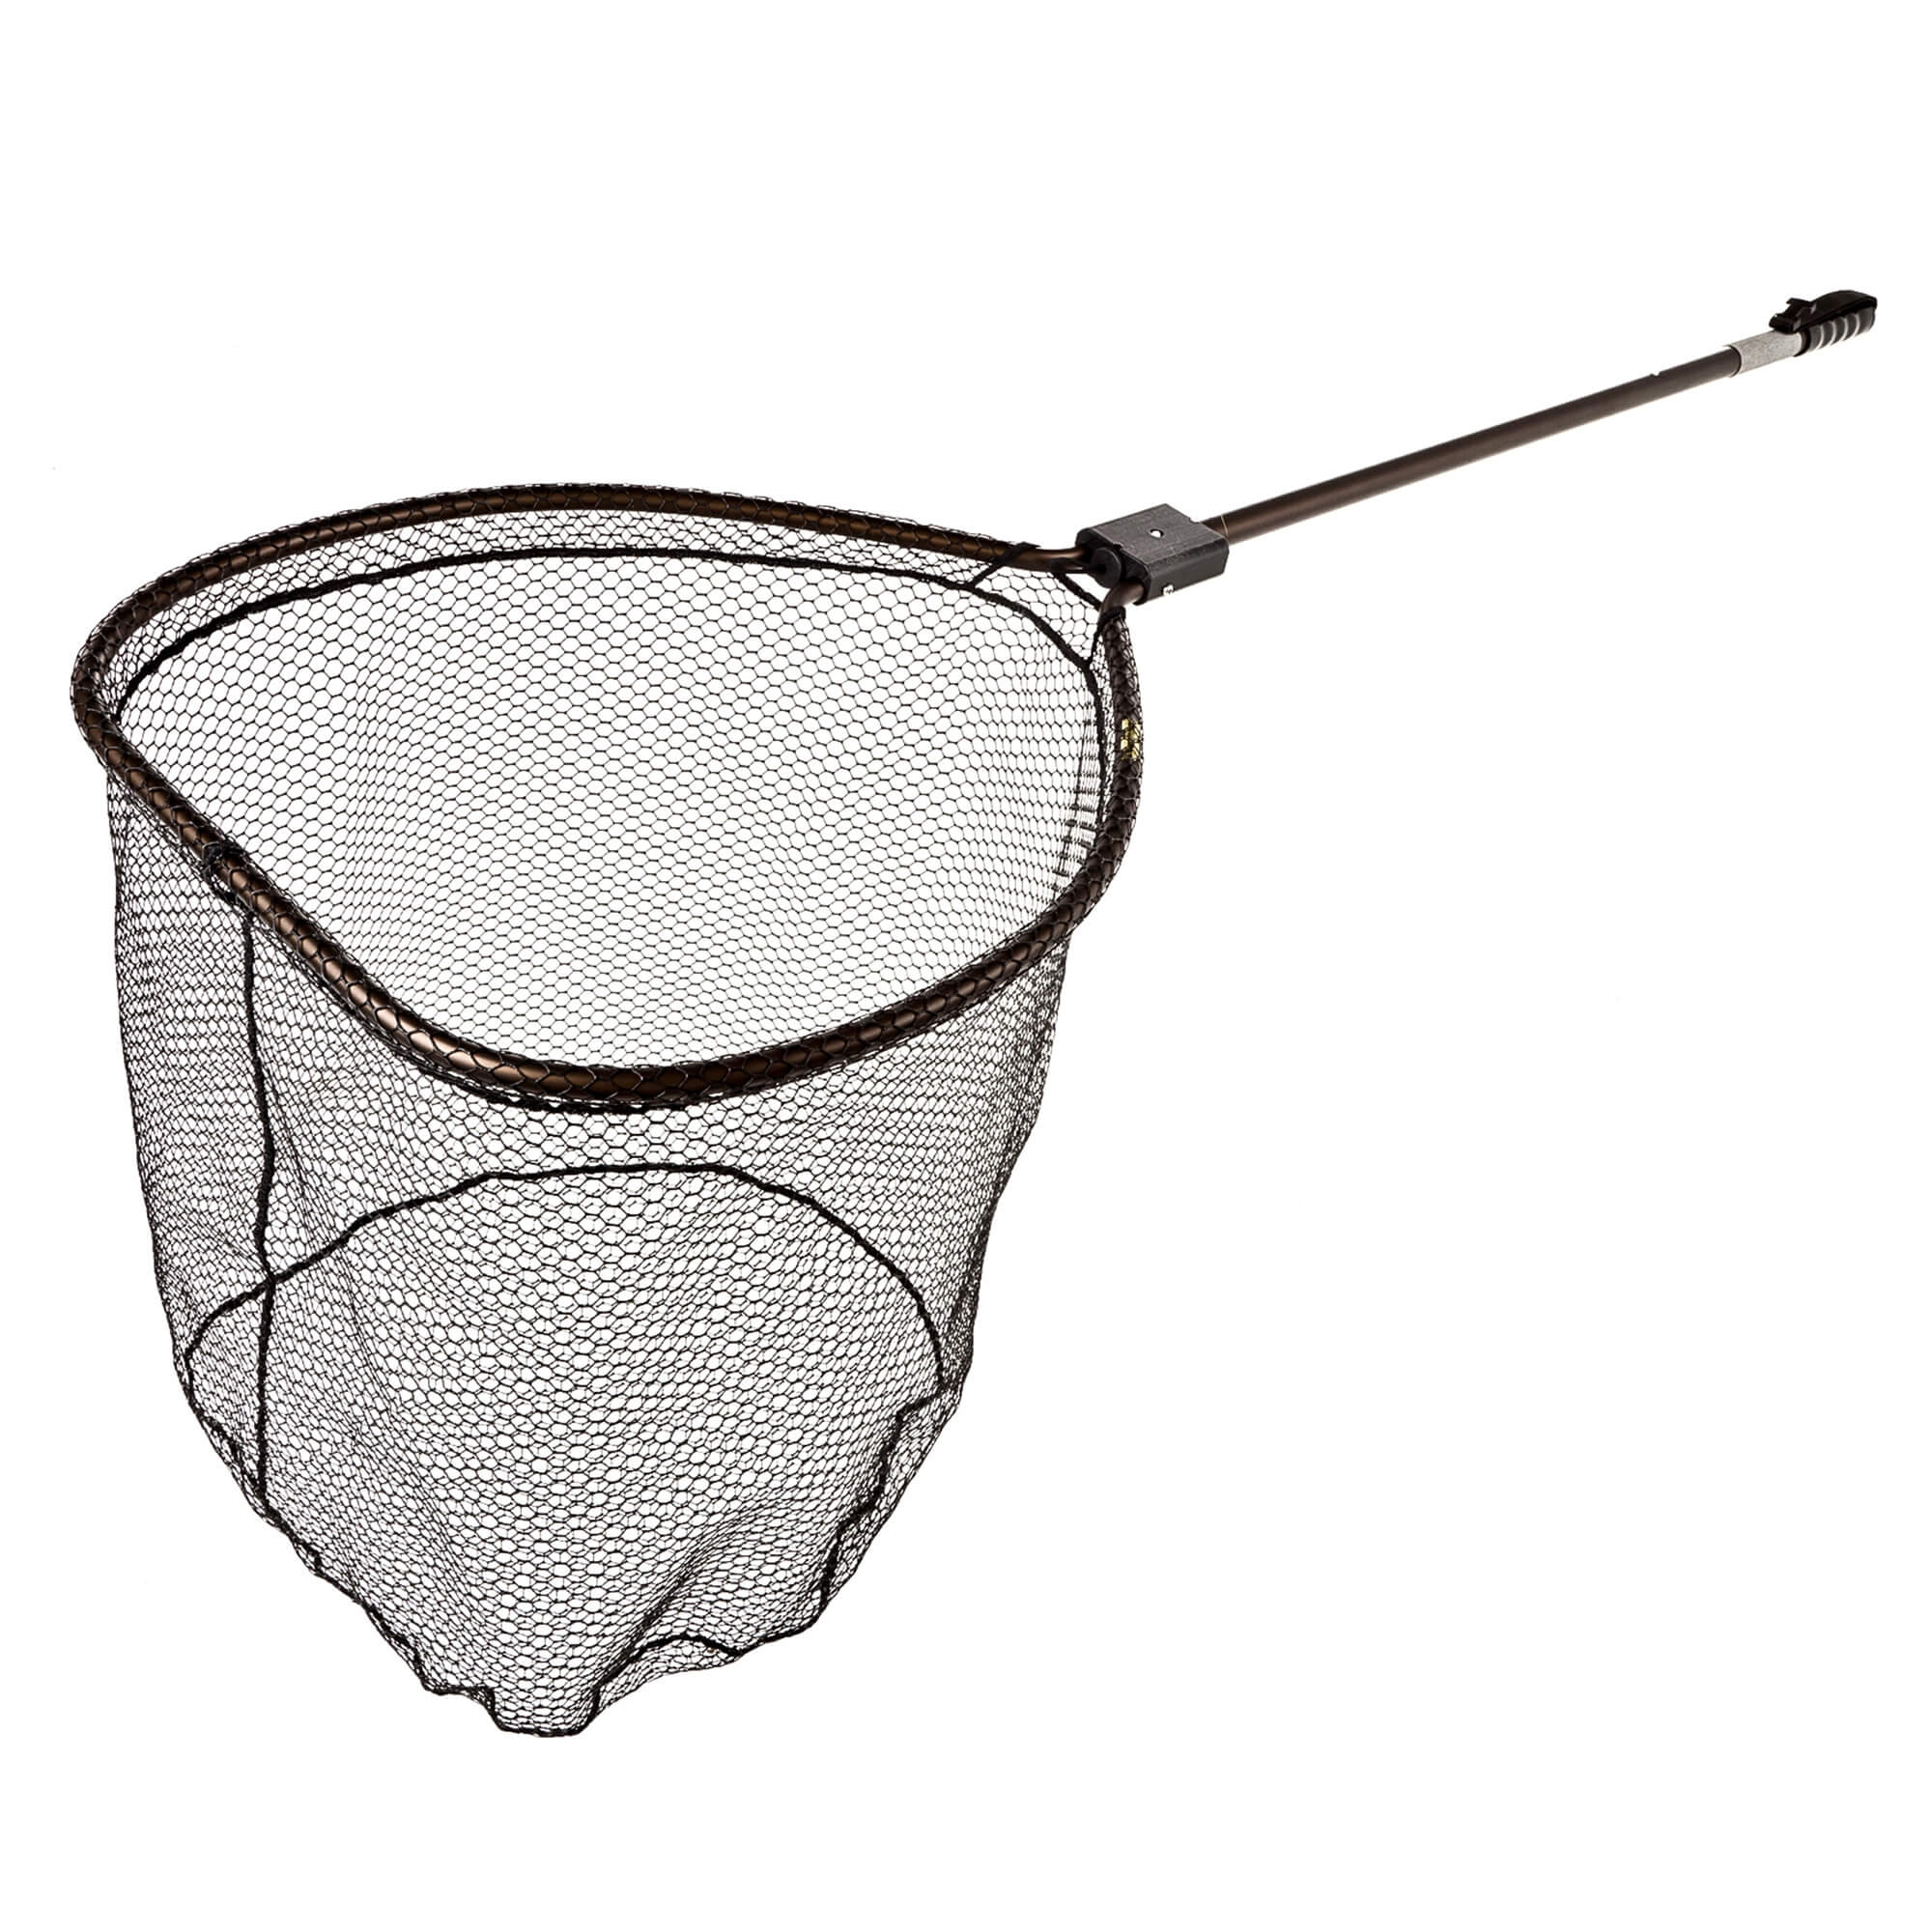 SALMON WEIGH NET RUBBER